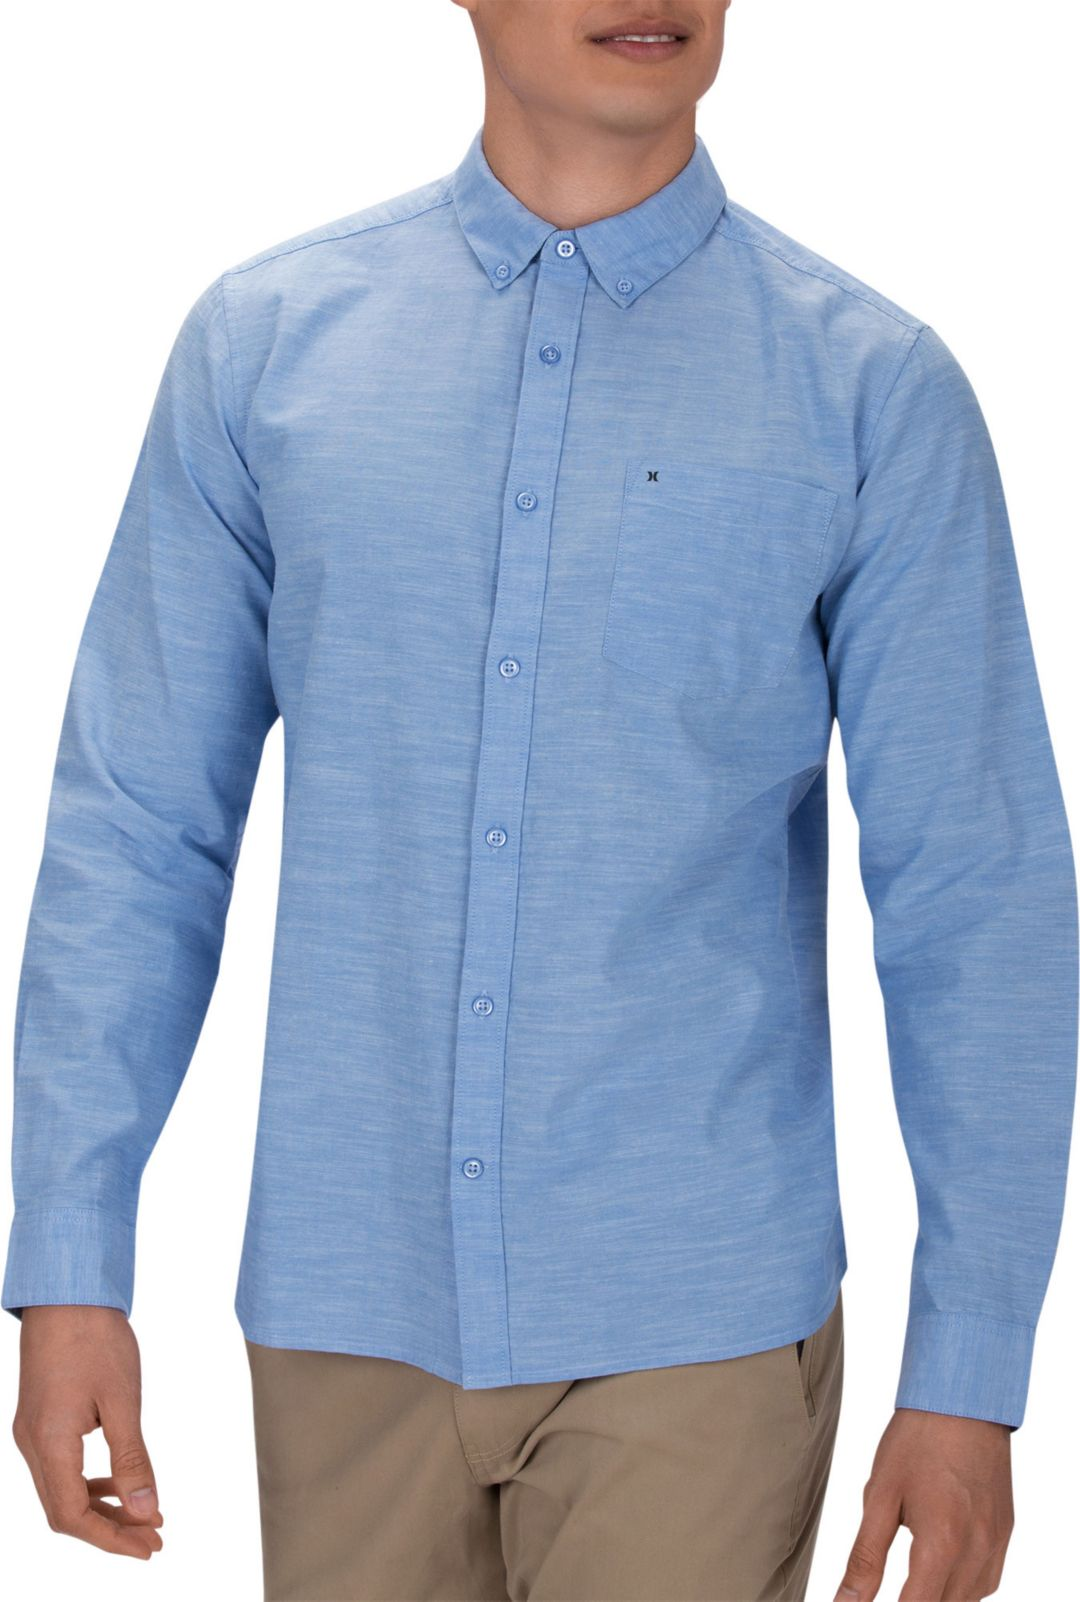 31062befc3 Hurley Men's One & Only 2.0 Woven Long Sleeve Shirt